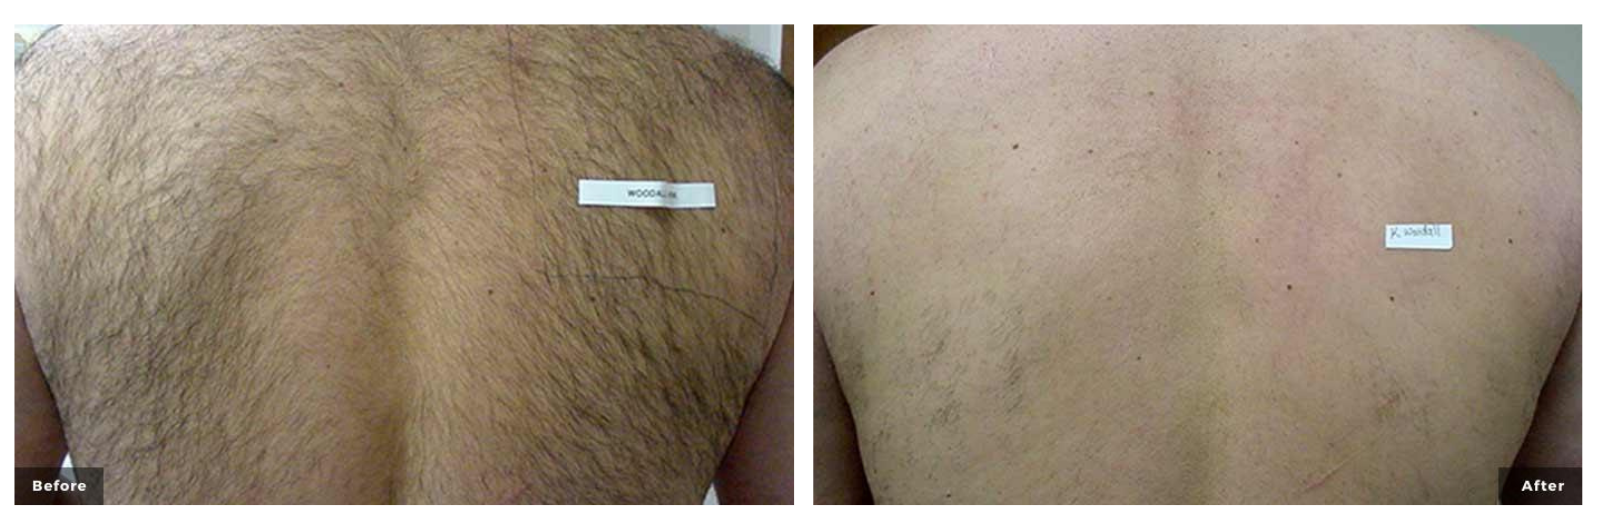 Laser hair removal men's back before and after images